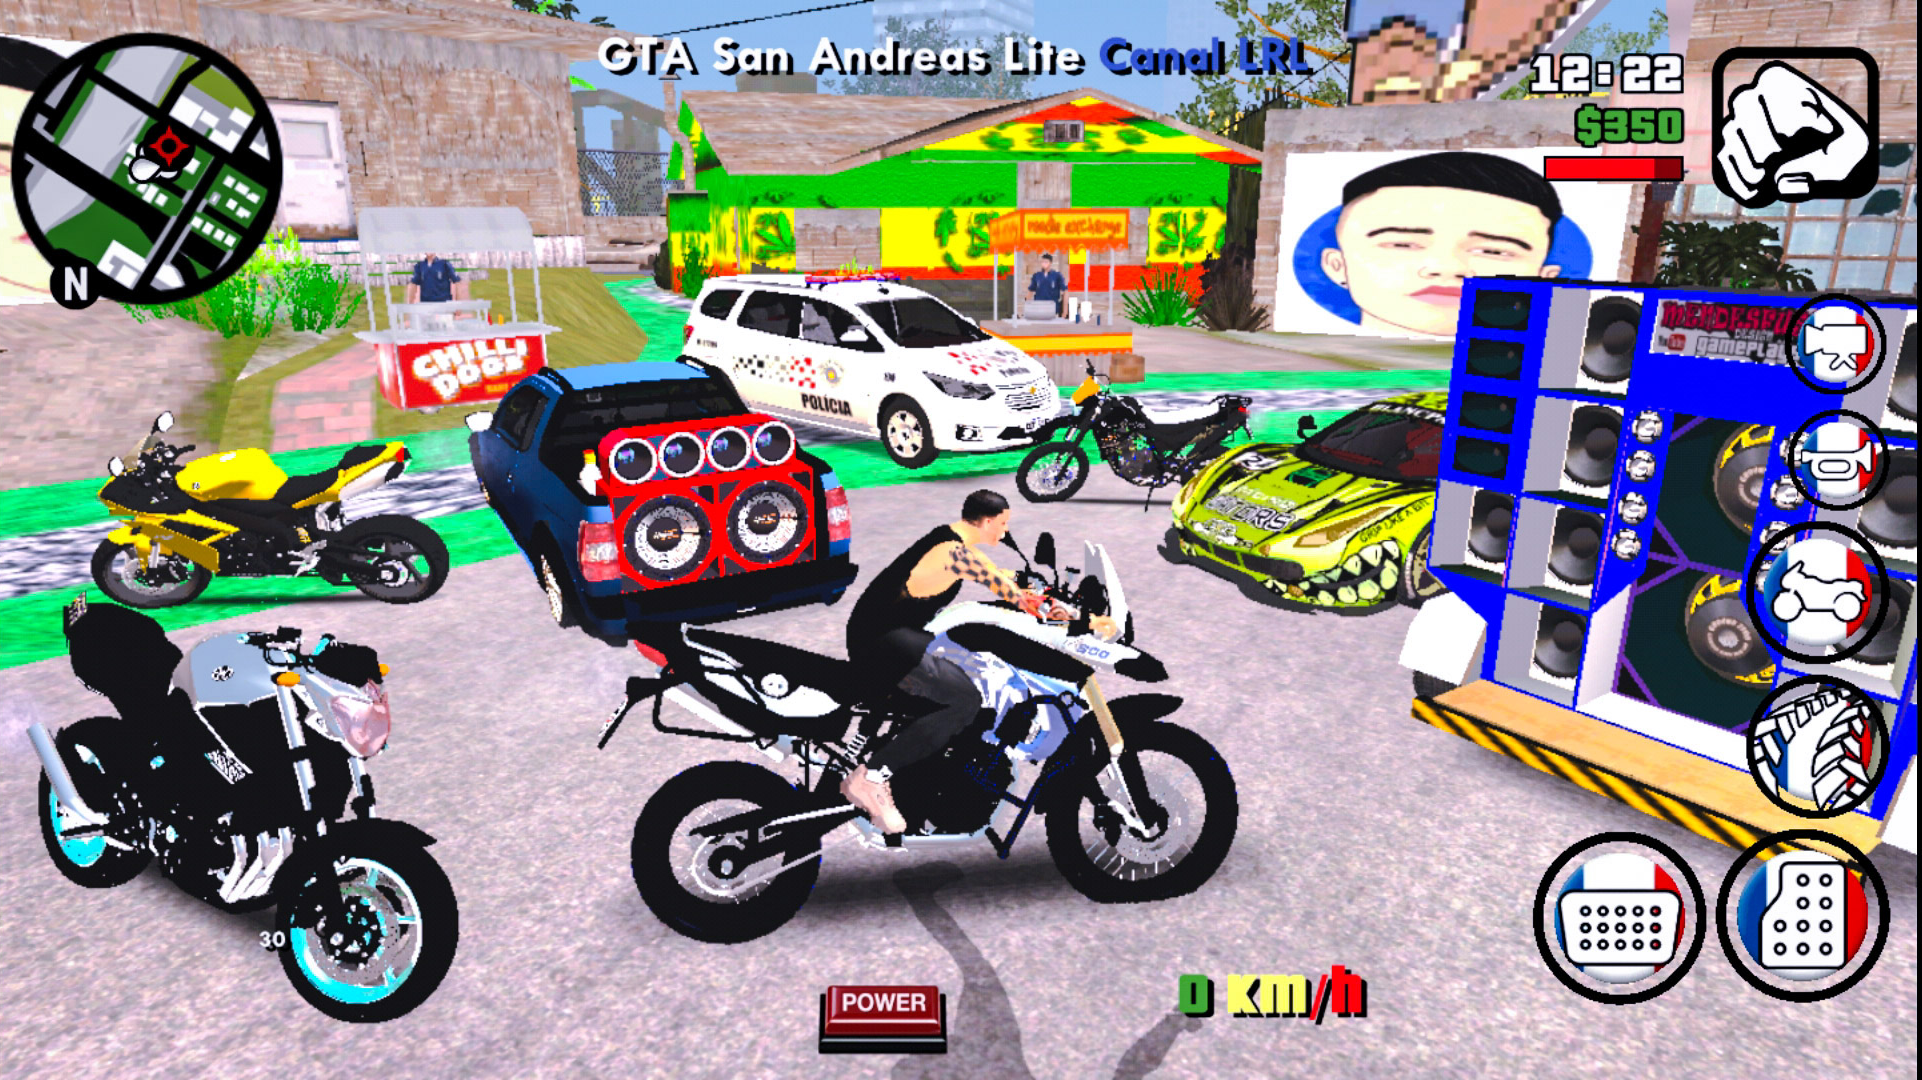 PSX 20191207 154330 - GTA Modificado v2 para Android (625MB) apk+data